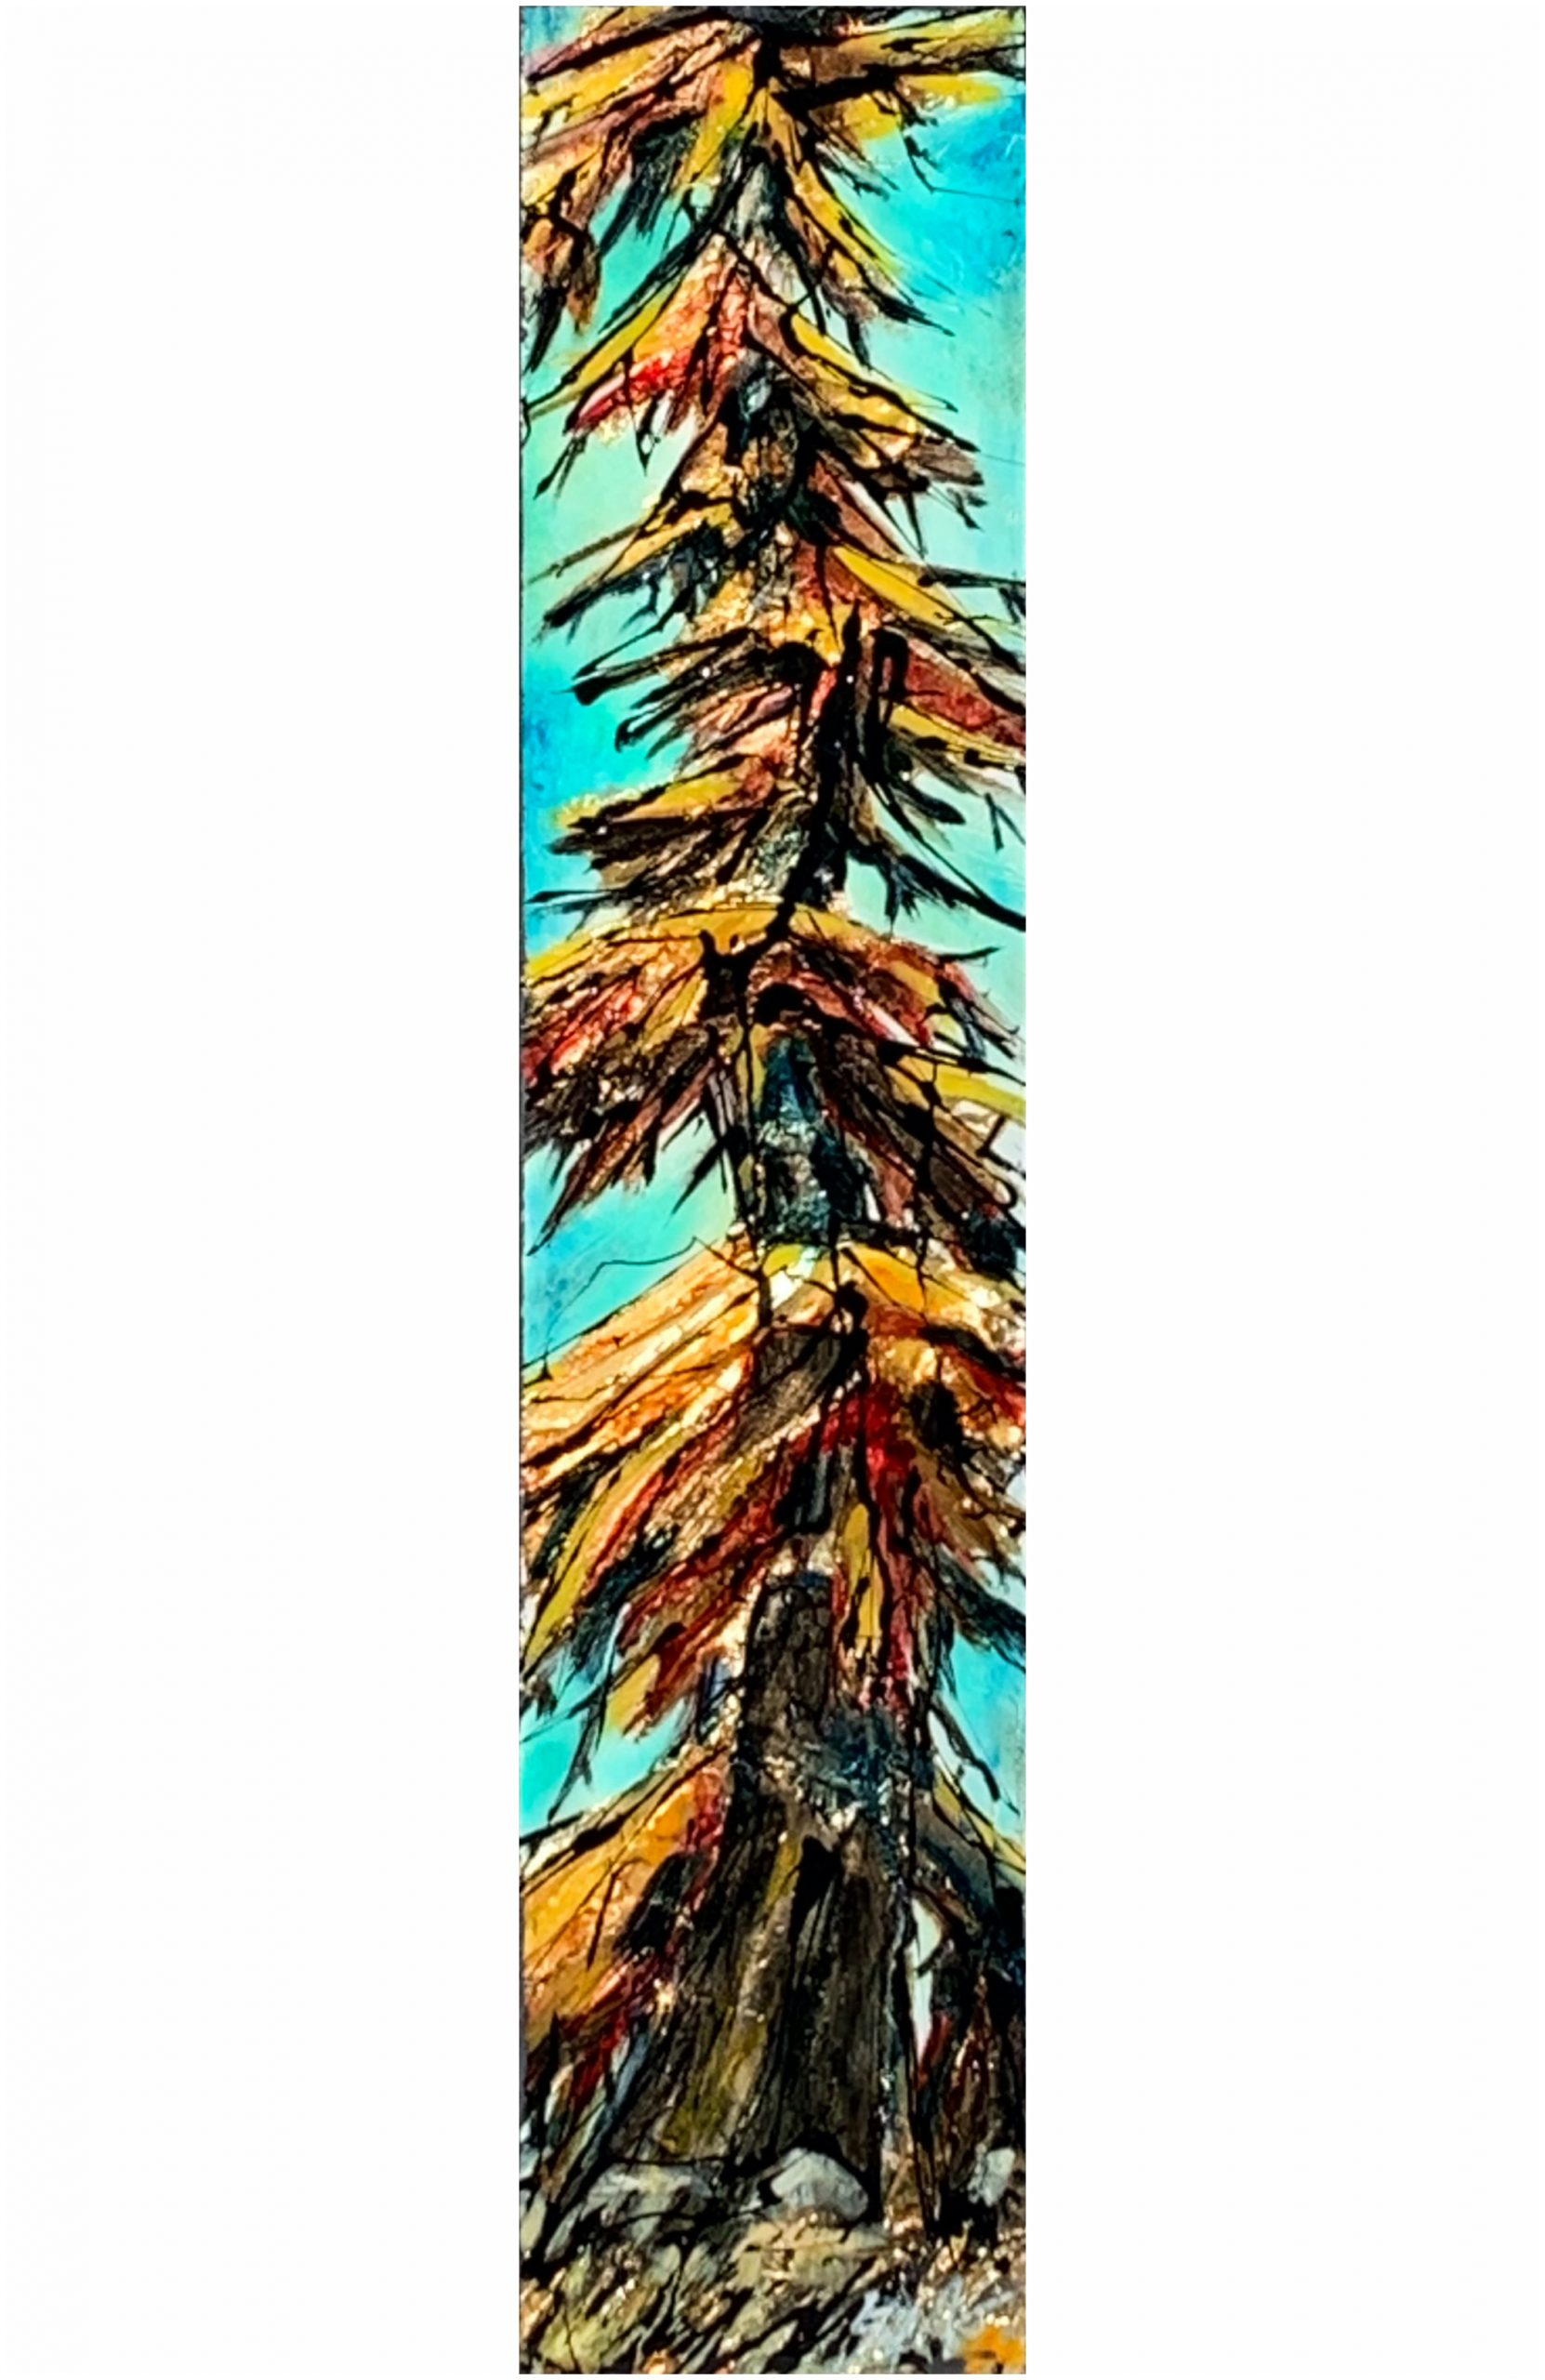 Agreed with That, mixed media tree painting by David Zimmerman | Effusion Art Gallery + Cast Glass Studio, Invermere BC